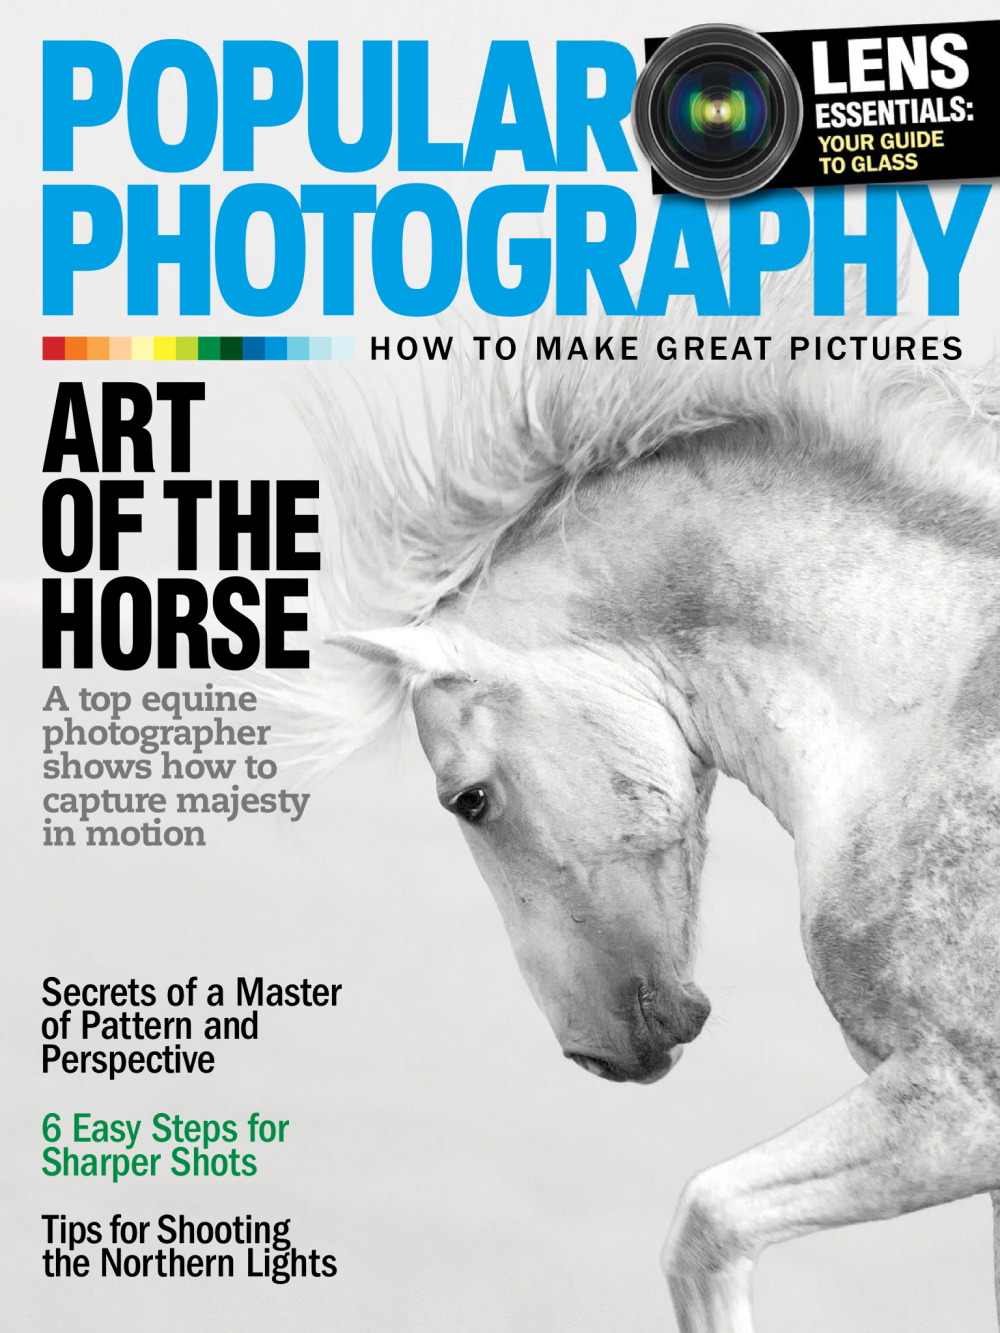 February 2016 Popular Photography Magazine The wild stallion Cloud